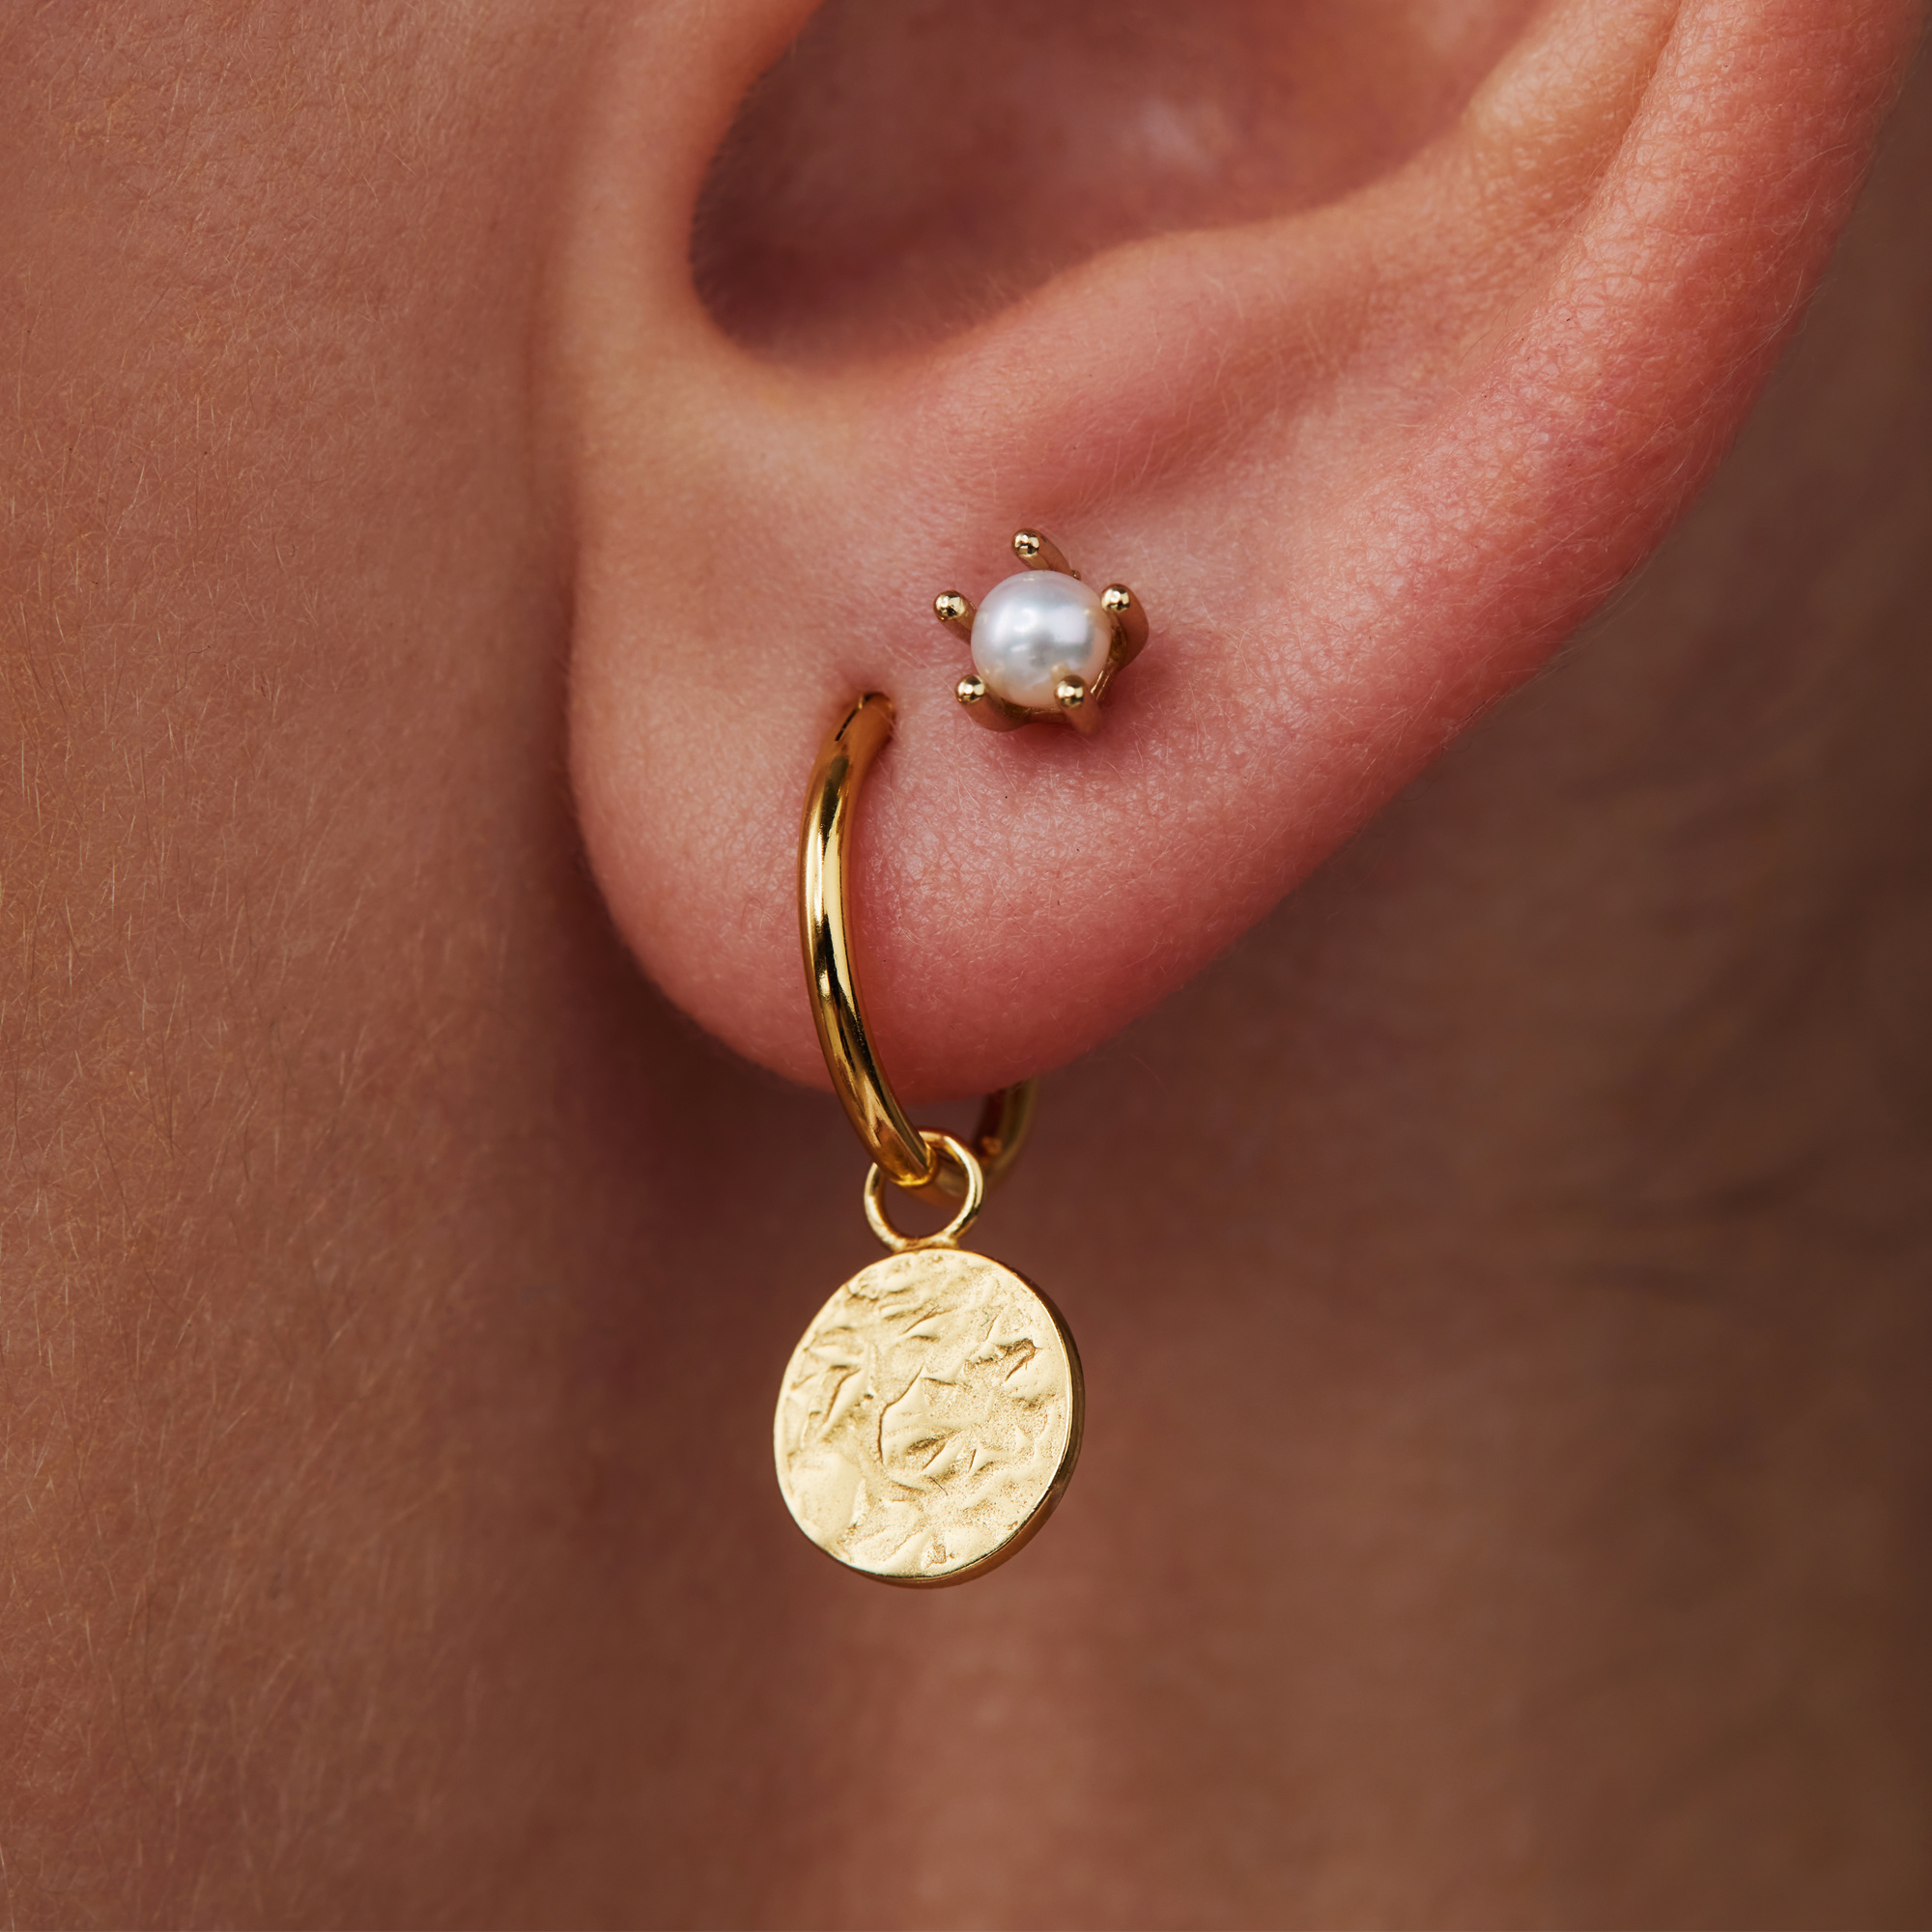 Violet Hamden Luna 925 sterling silver gold colored hoop earrings with coins